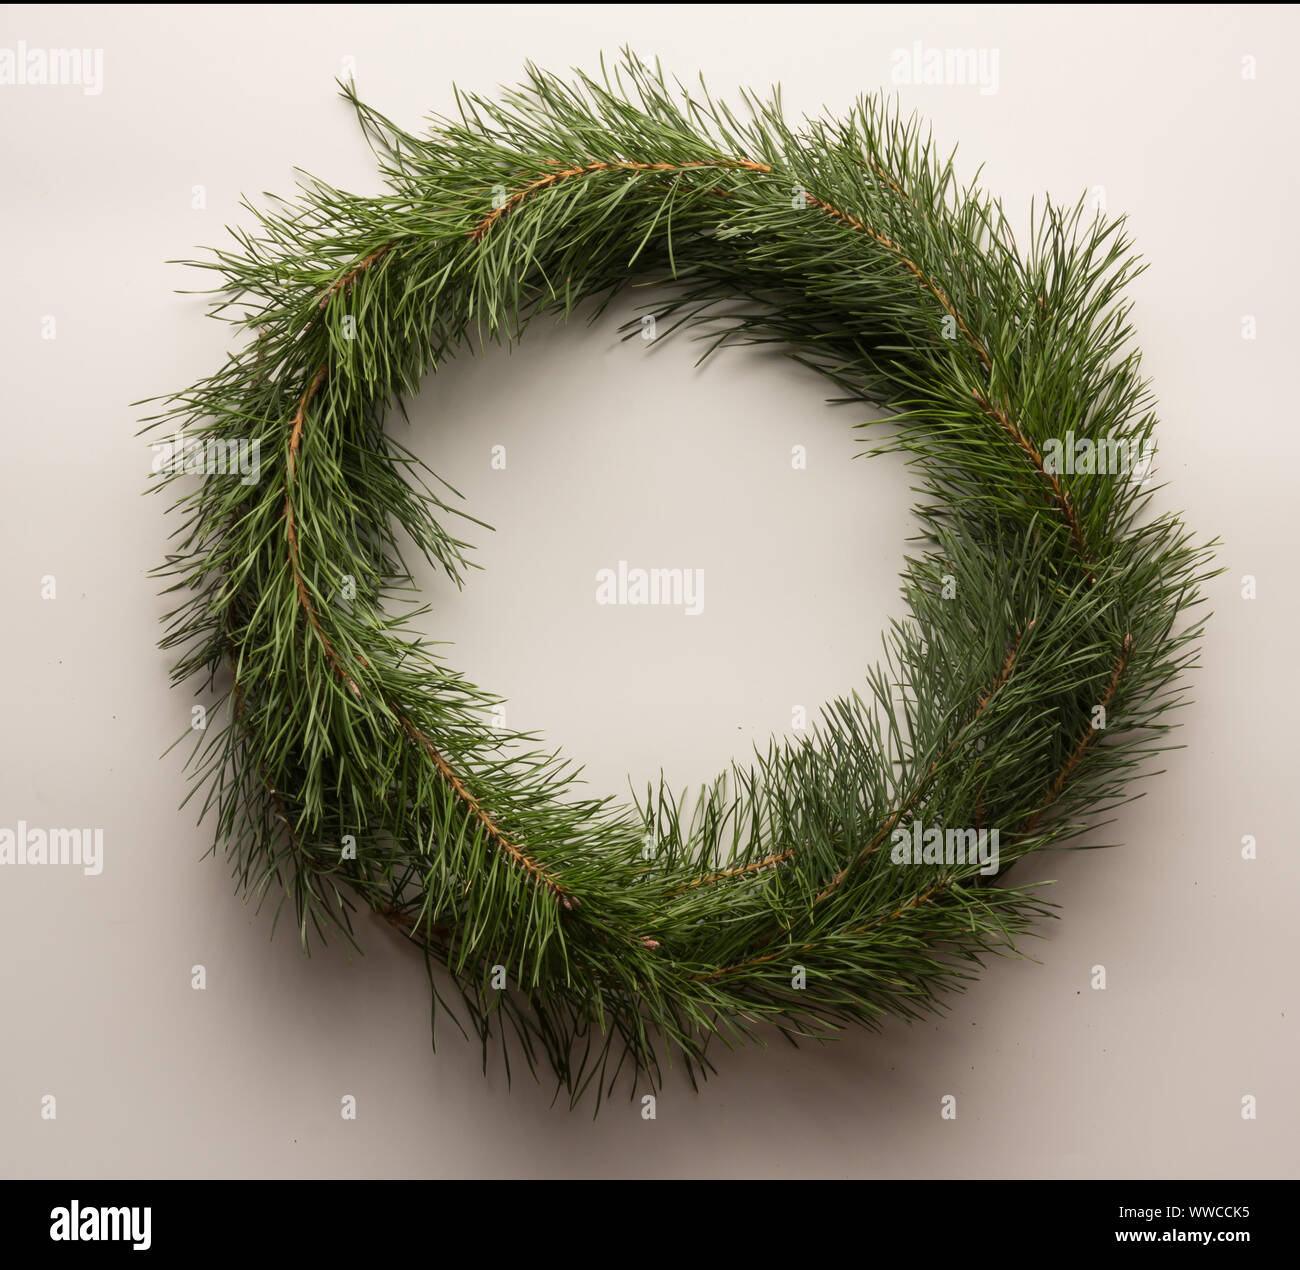 Christmas Garland Clipart High Resolution Stock Photography And Images Alamy Do you say merry christmas in brazil. https www alamy com clipart merry christmas greeting card christmas tree front door front door images marble background image273795289 html